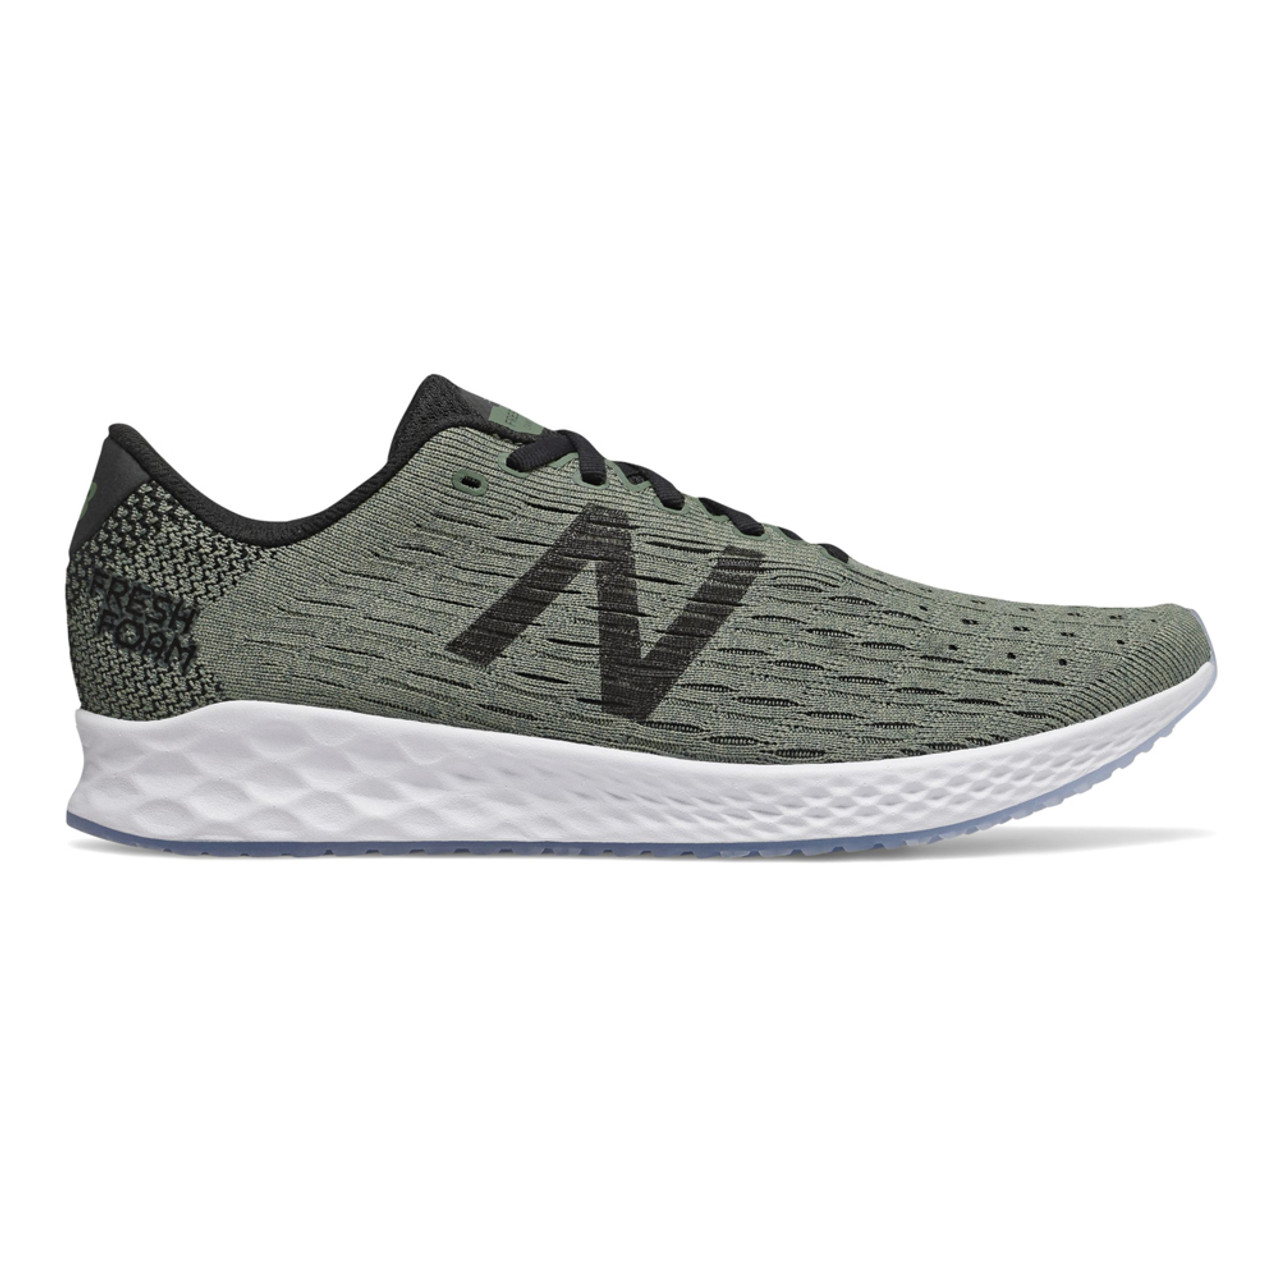 9c1833a656fcb New Balance Men's MZANPMG Running Shoe Mineral Green/Black - Shop now @  Shoolu.